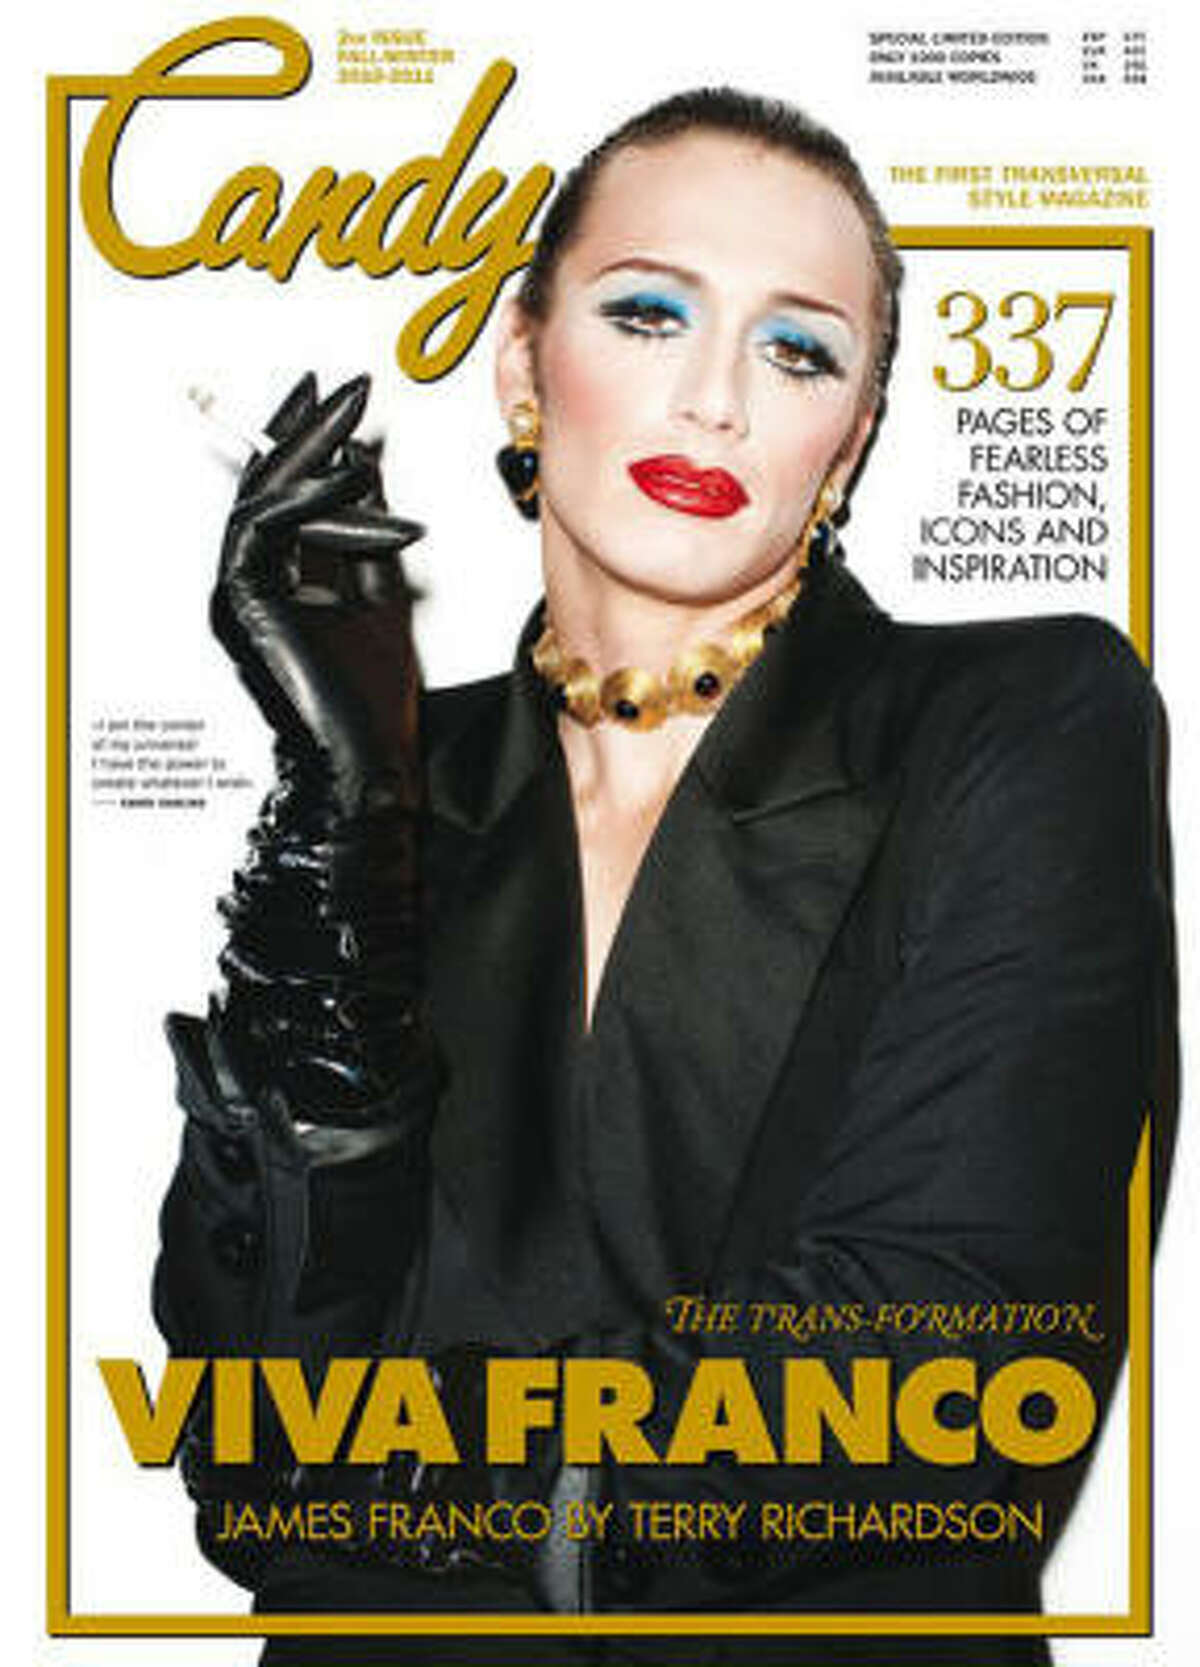 James Franco glammed up for a cover of Candy Magazine, described as